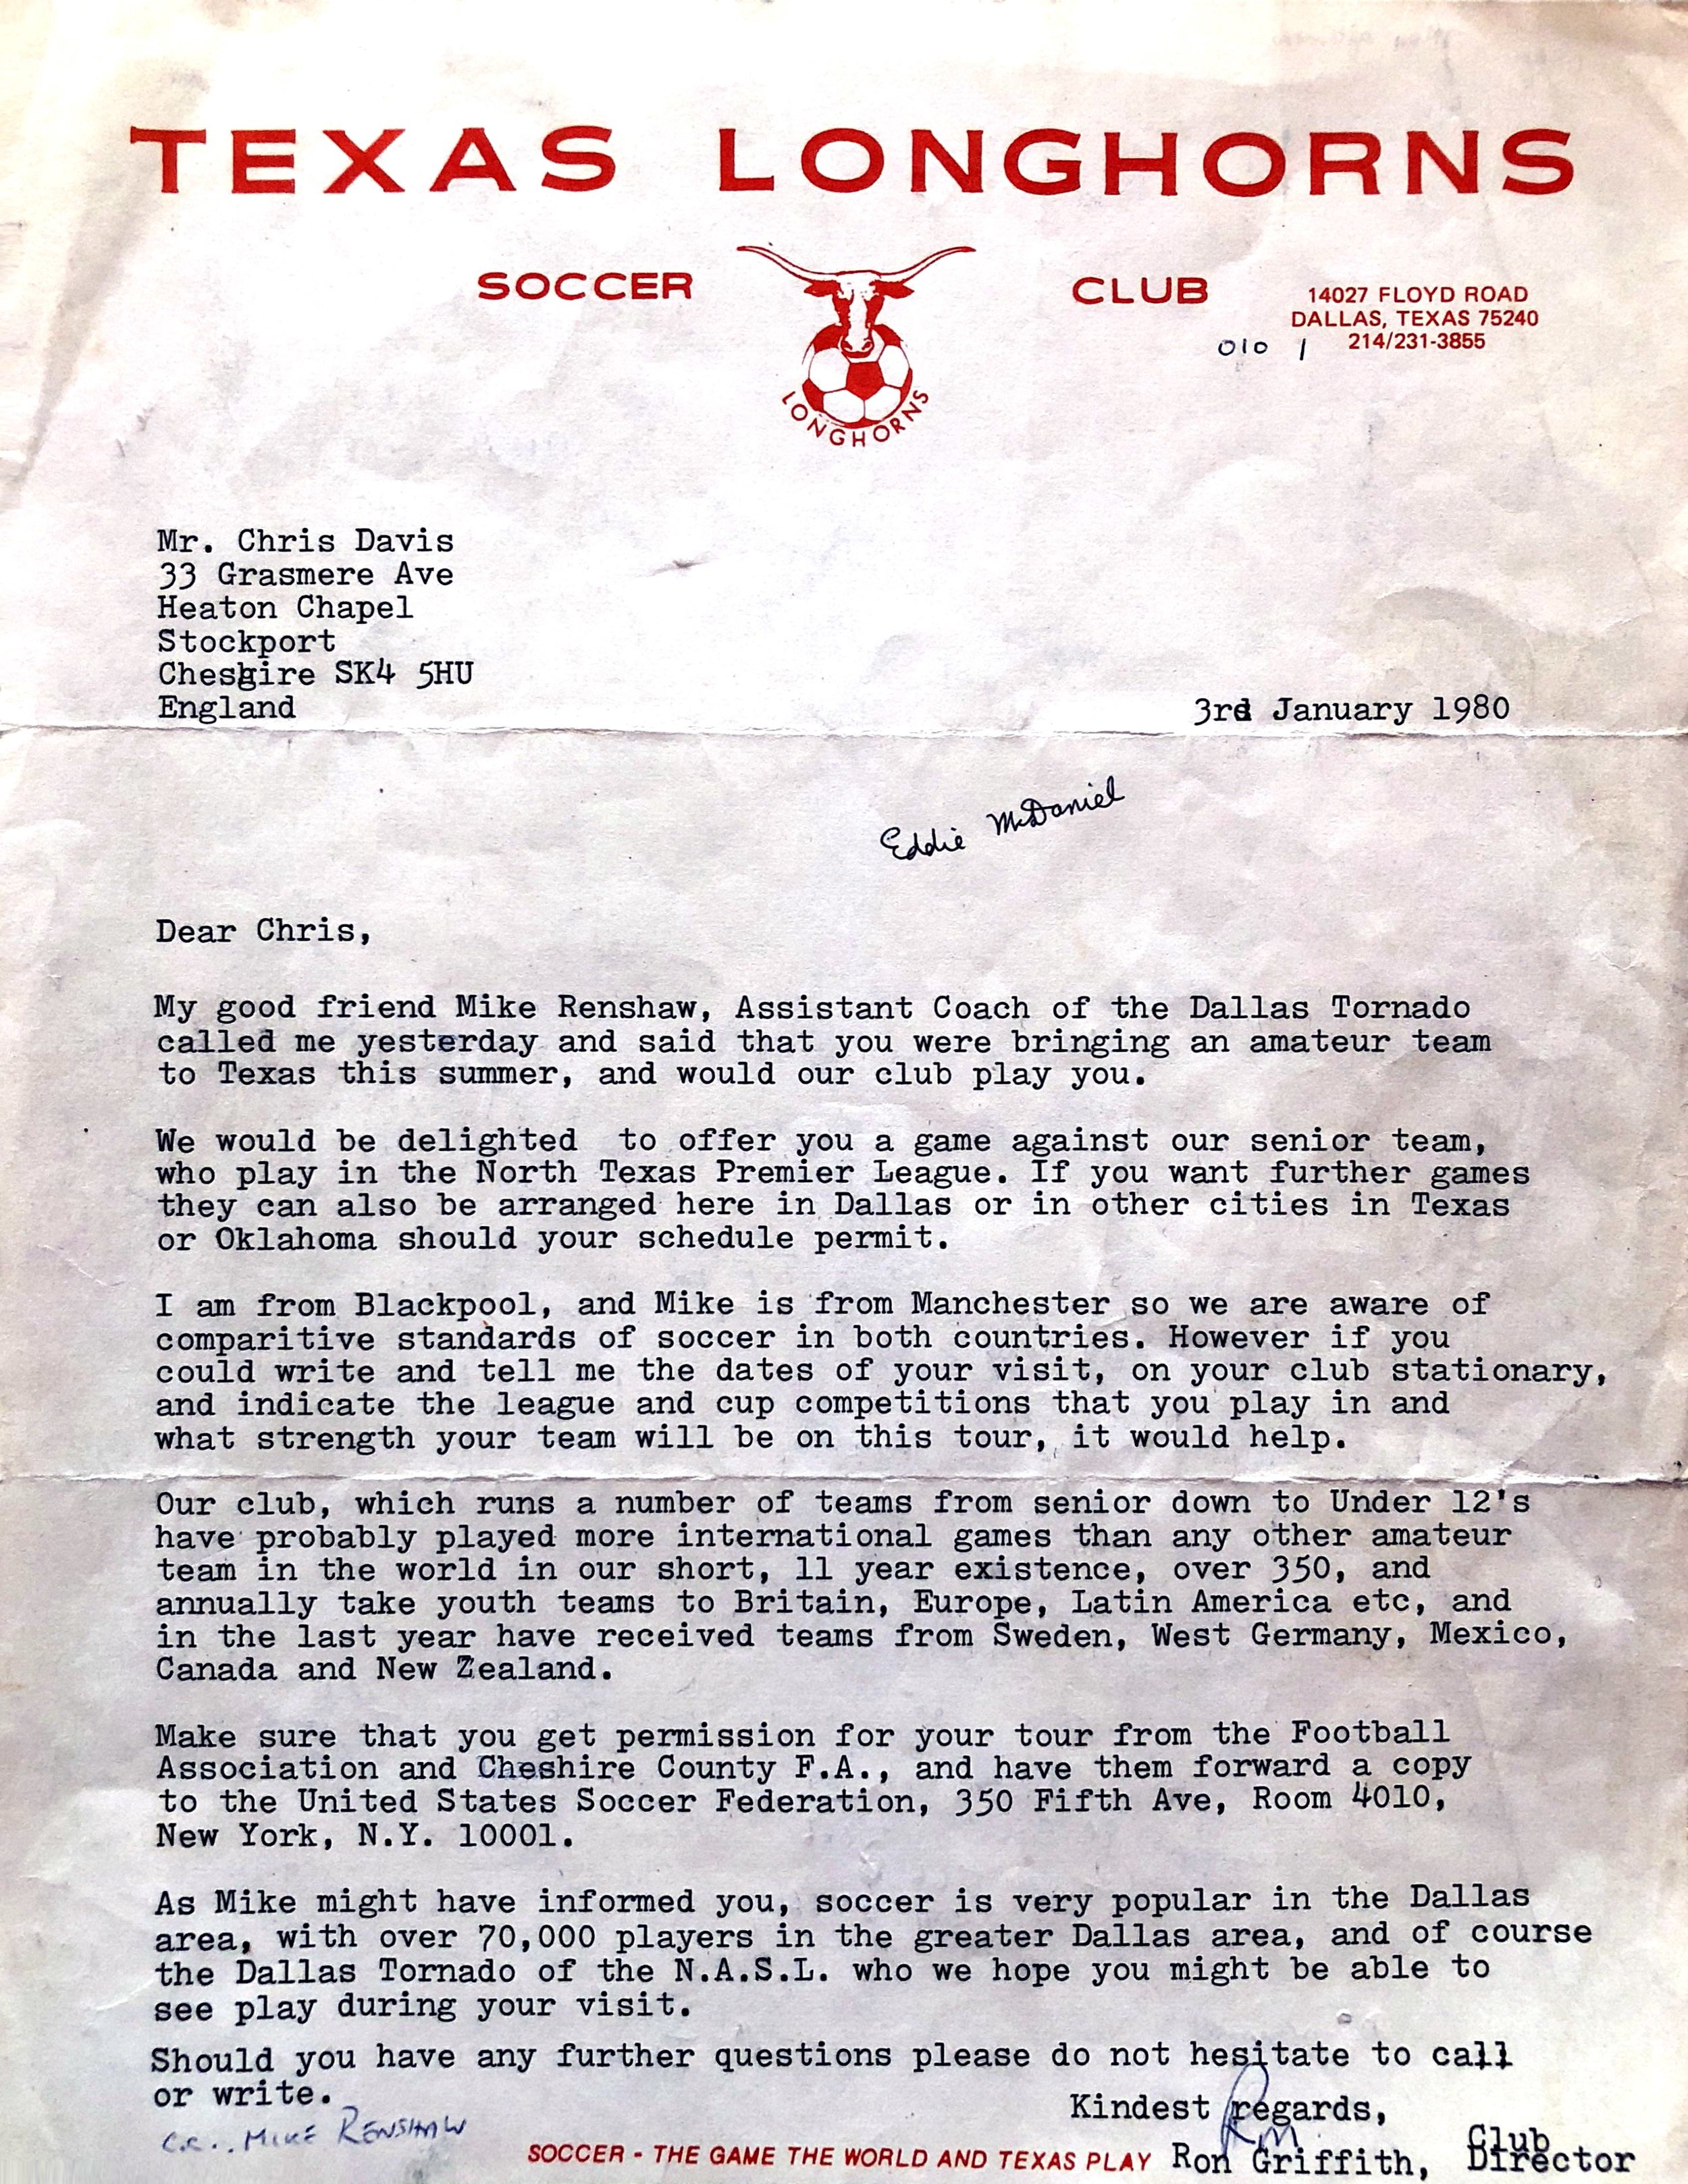 A letter from Texas Longhorns in 1980 inviting the club to play a friendly.